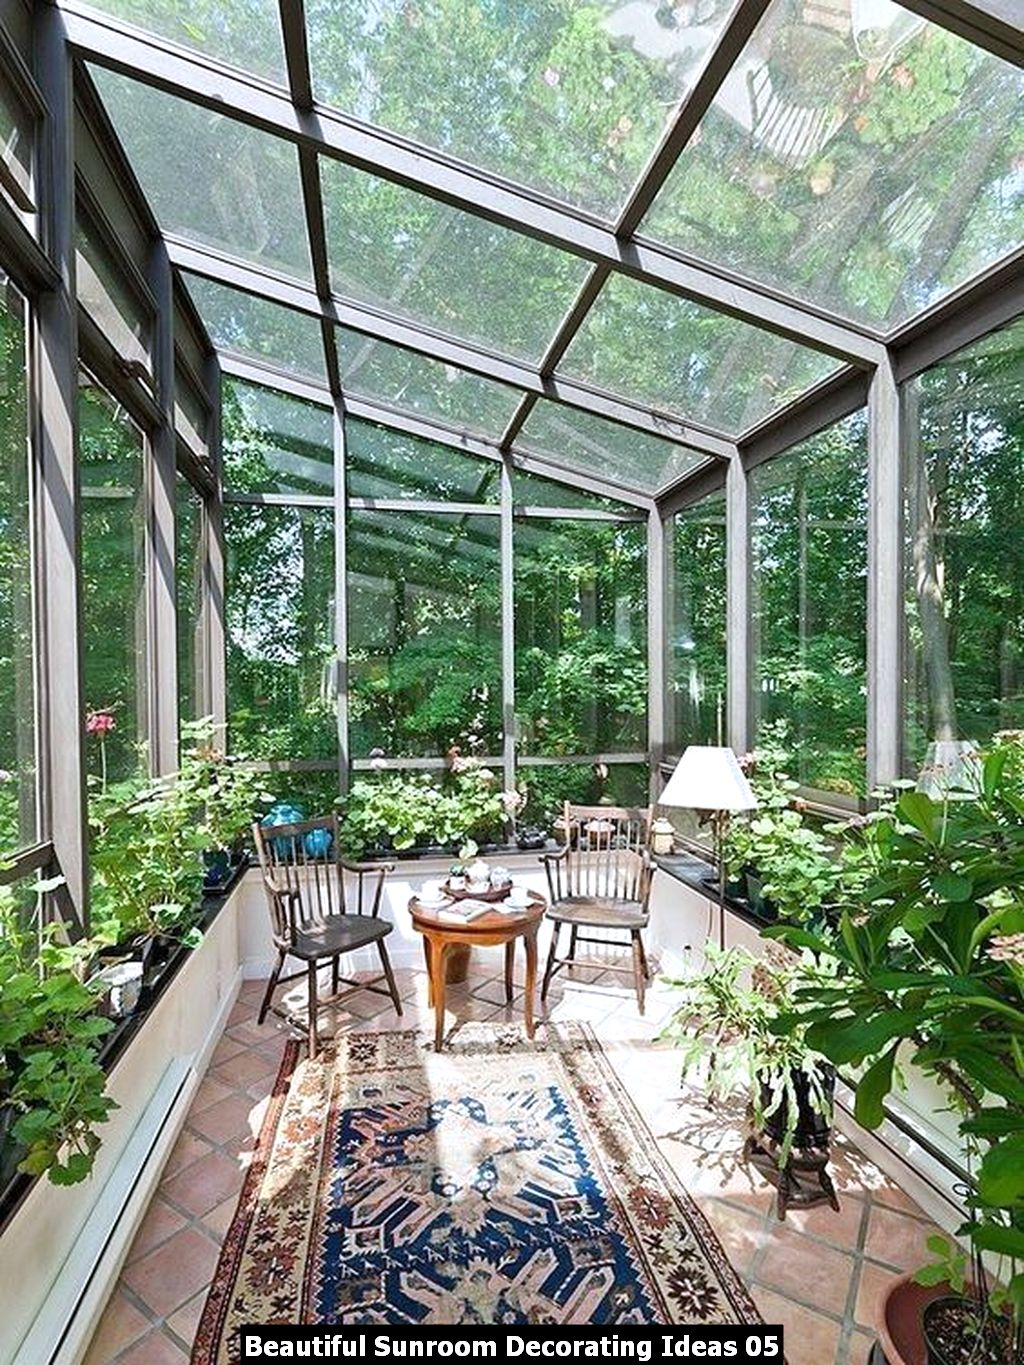 Beautiful Sunroom Decorating Ideas 05